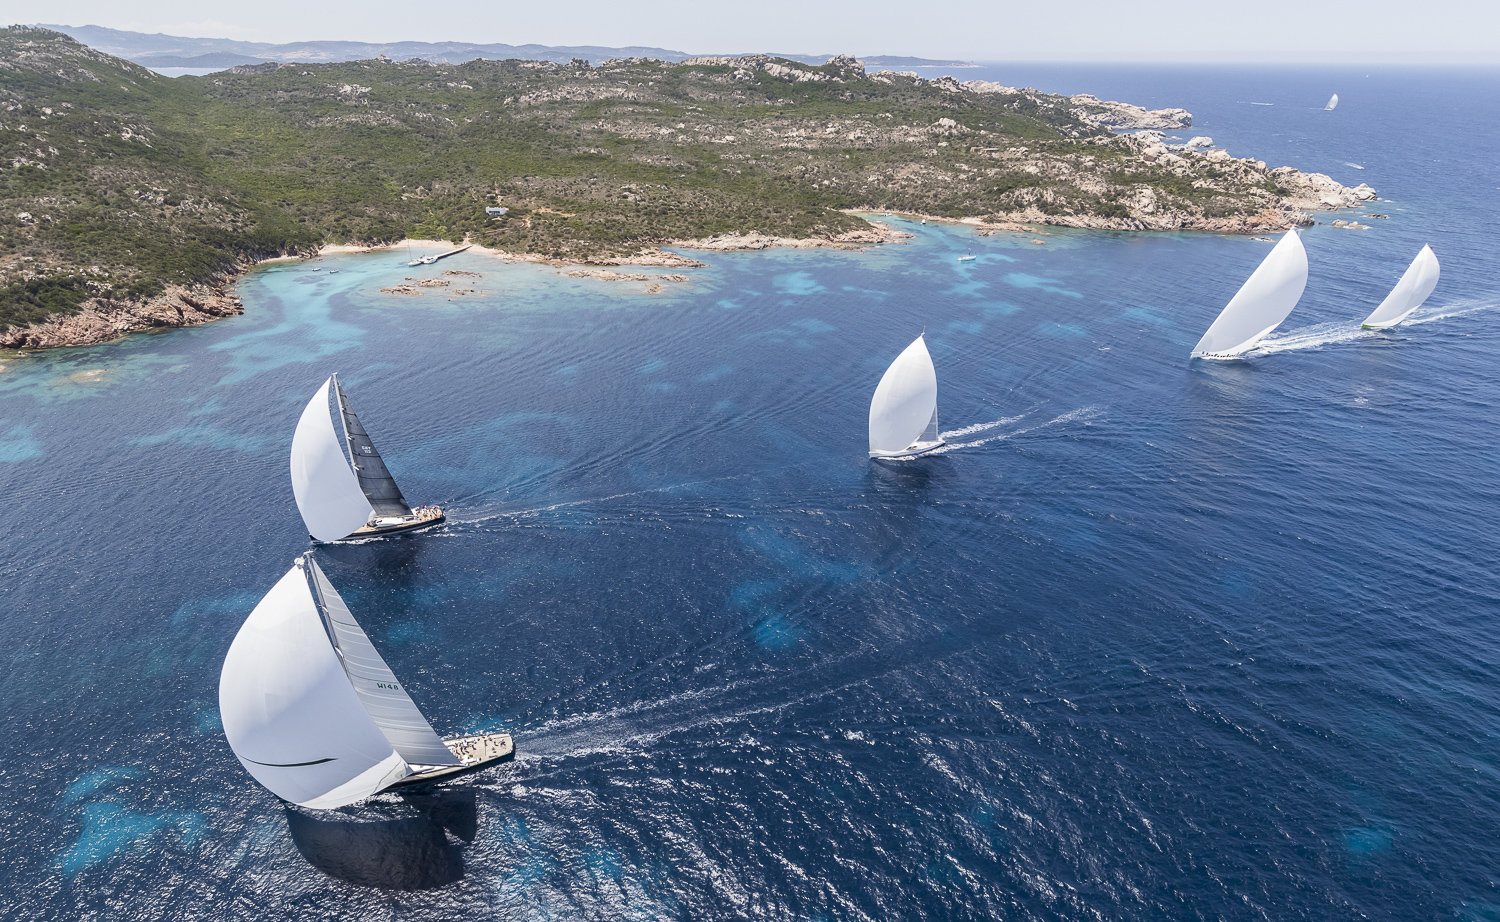 Loro Piana Superyacht Regatta 2016